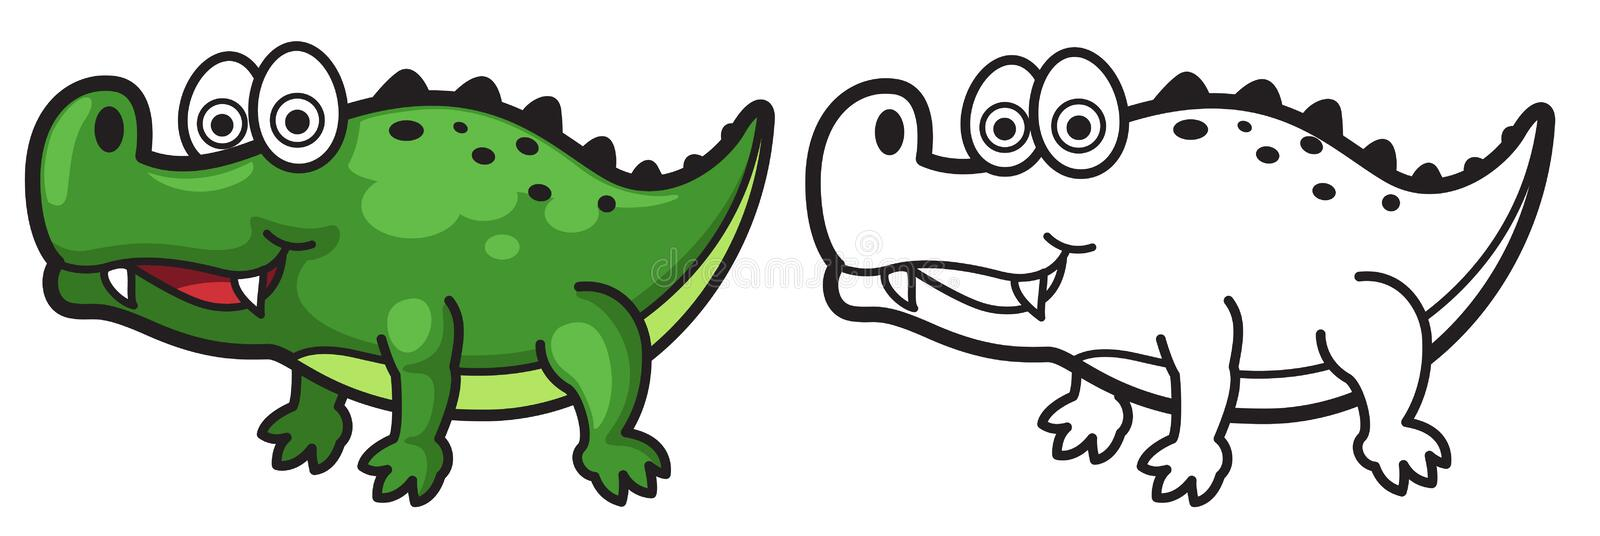 Colorful and black and white alligator stock illustration